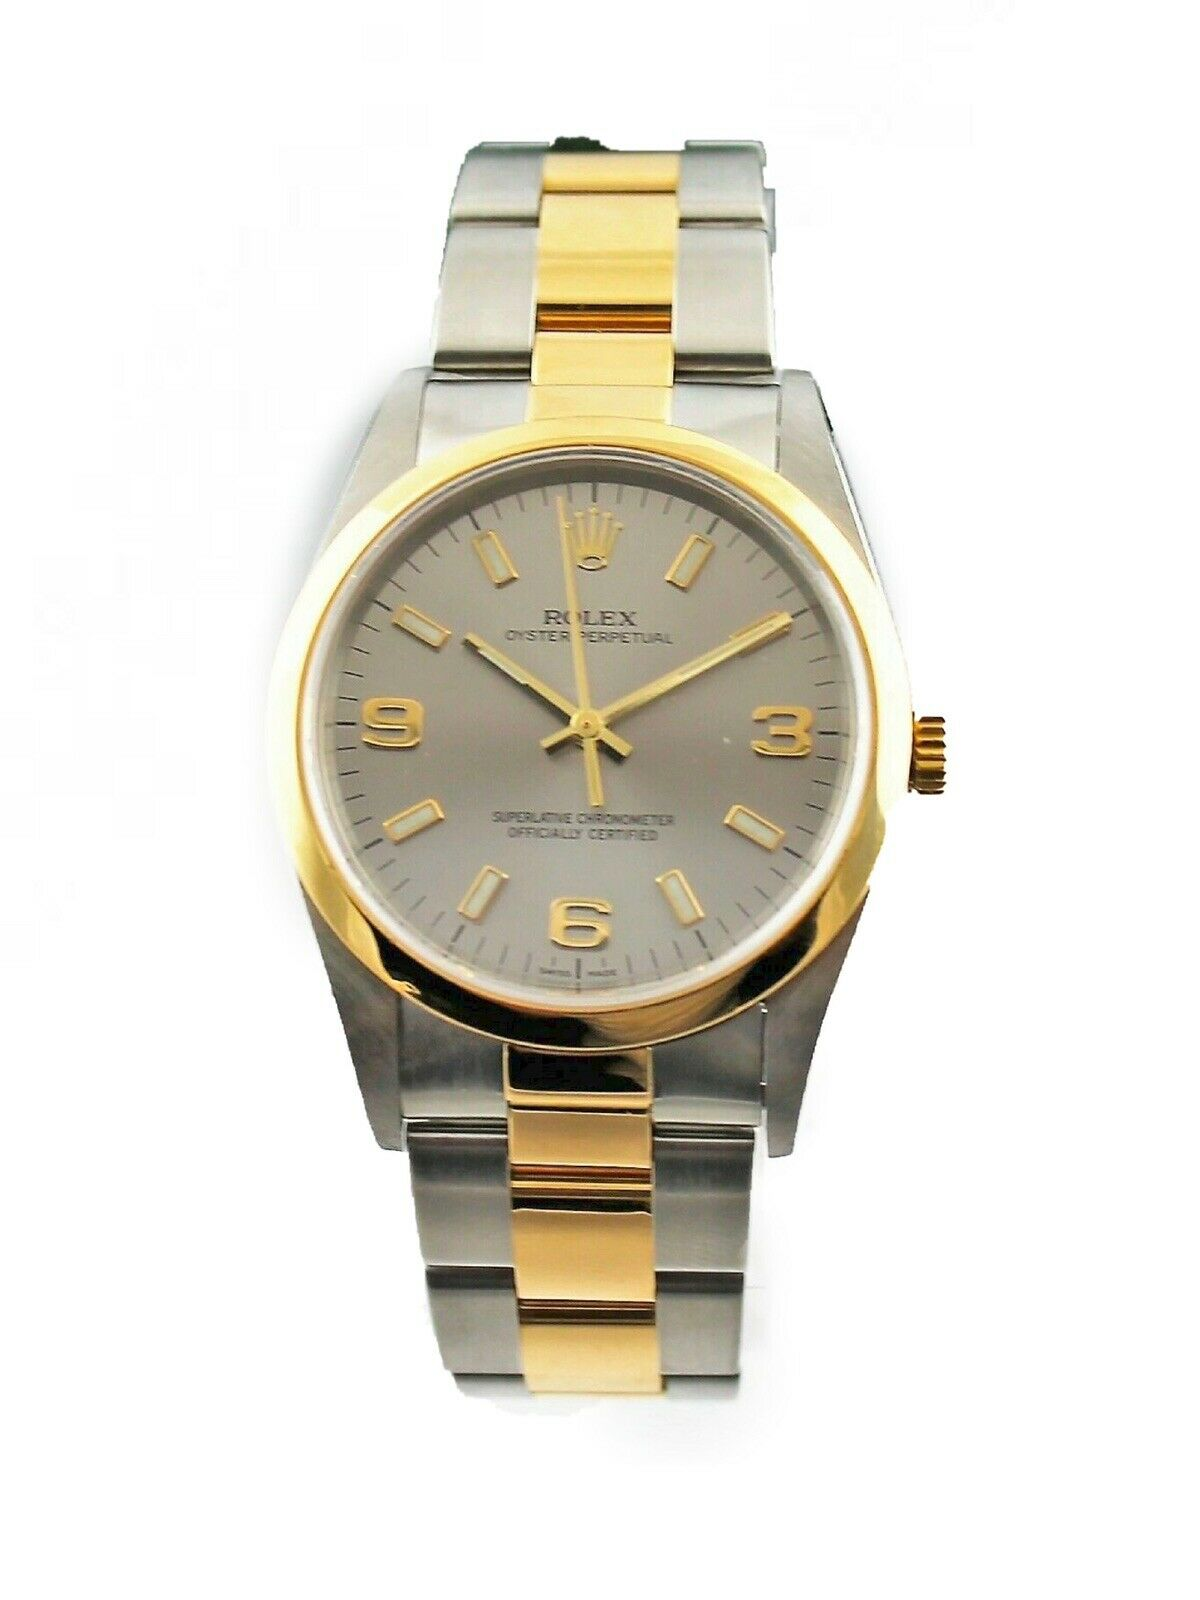 Rolex Oyster Perpetual 18k Yellow Gold & Steel 14203 Arabic Dial Watch